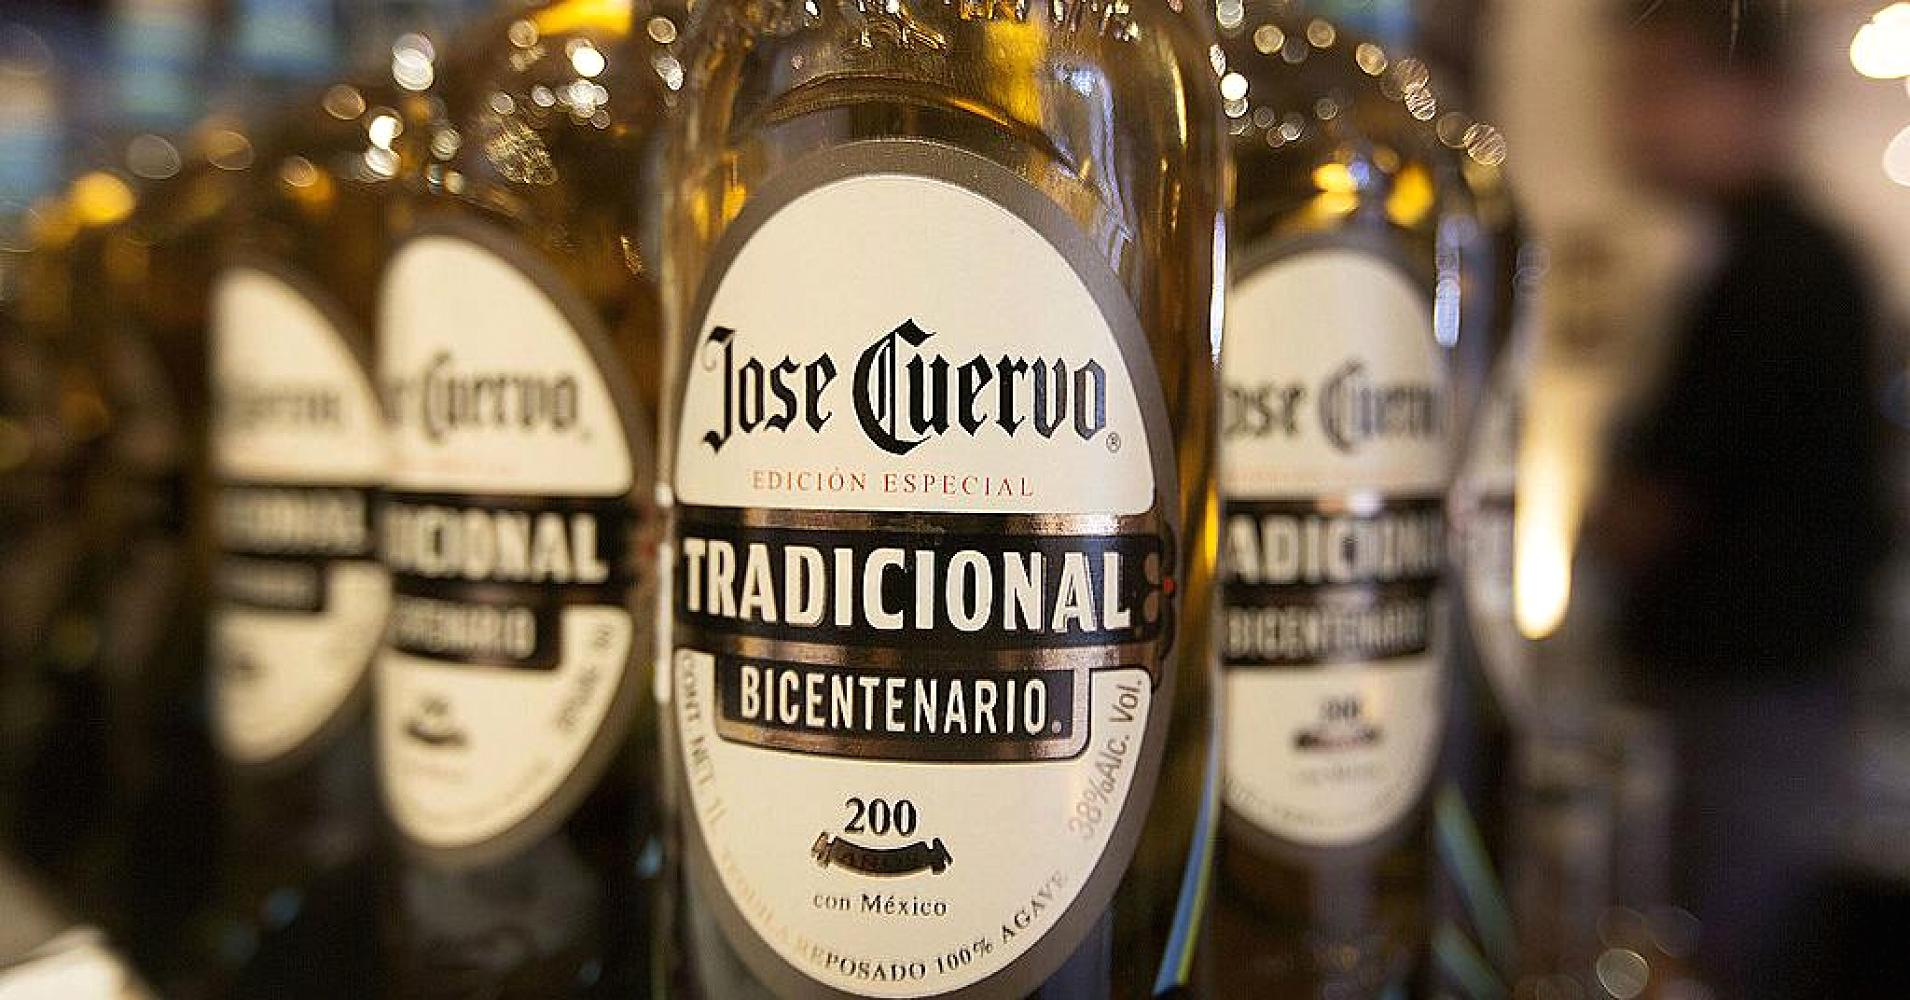 Mexico's Jose Cuervo raises more than $900 million in IPO photo